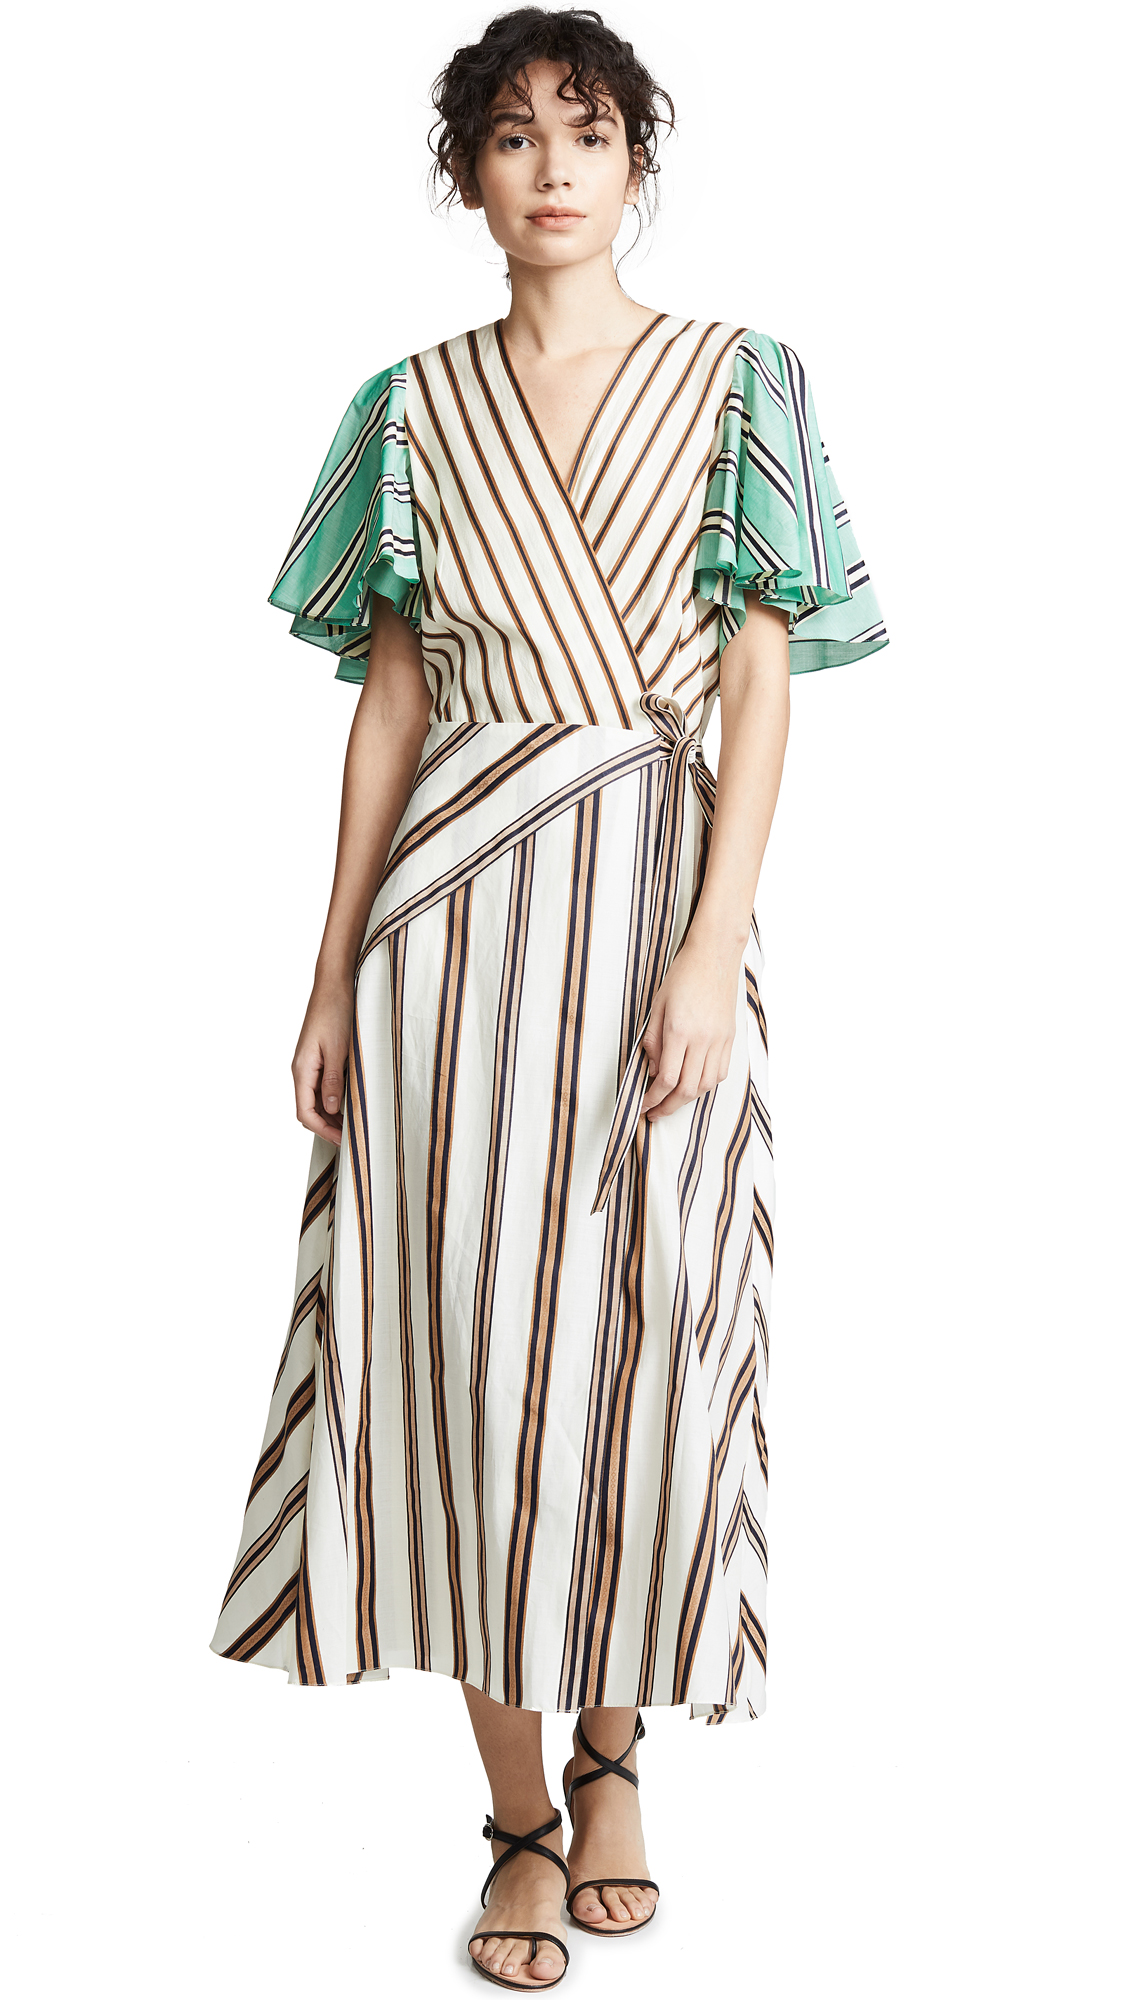 ANNA OCTOBER Mixed Stripe Dress in White/Tan/Teal Stripe